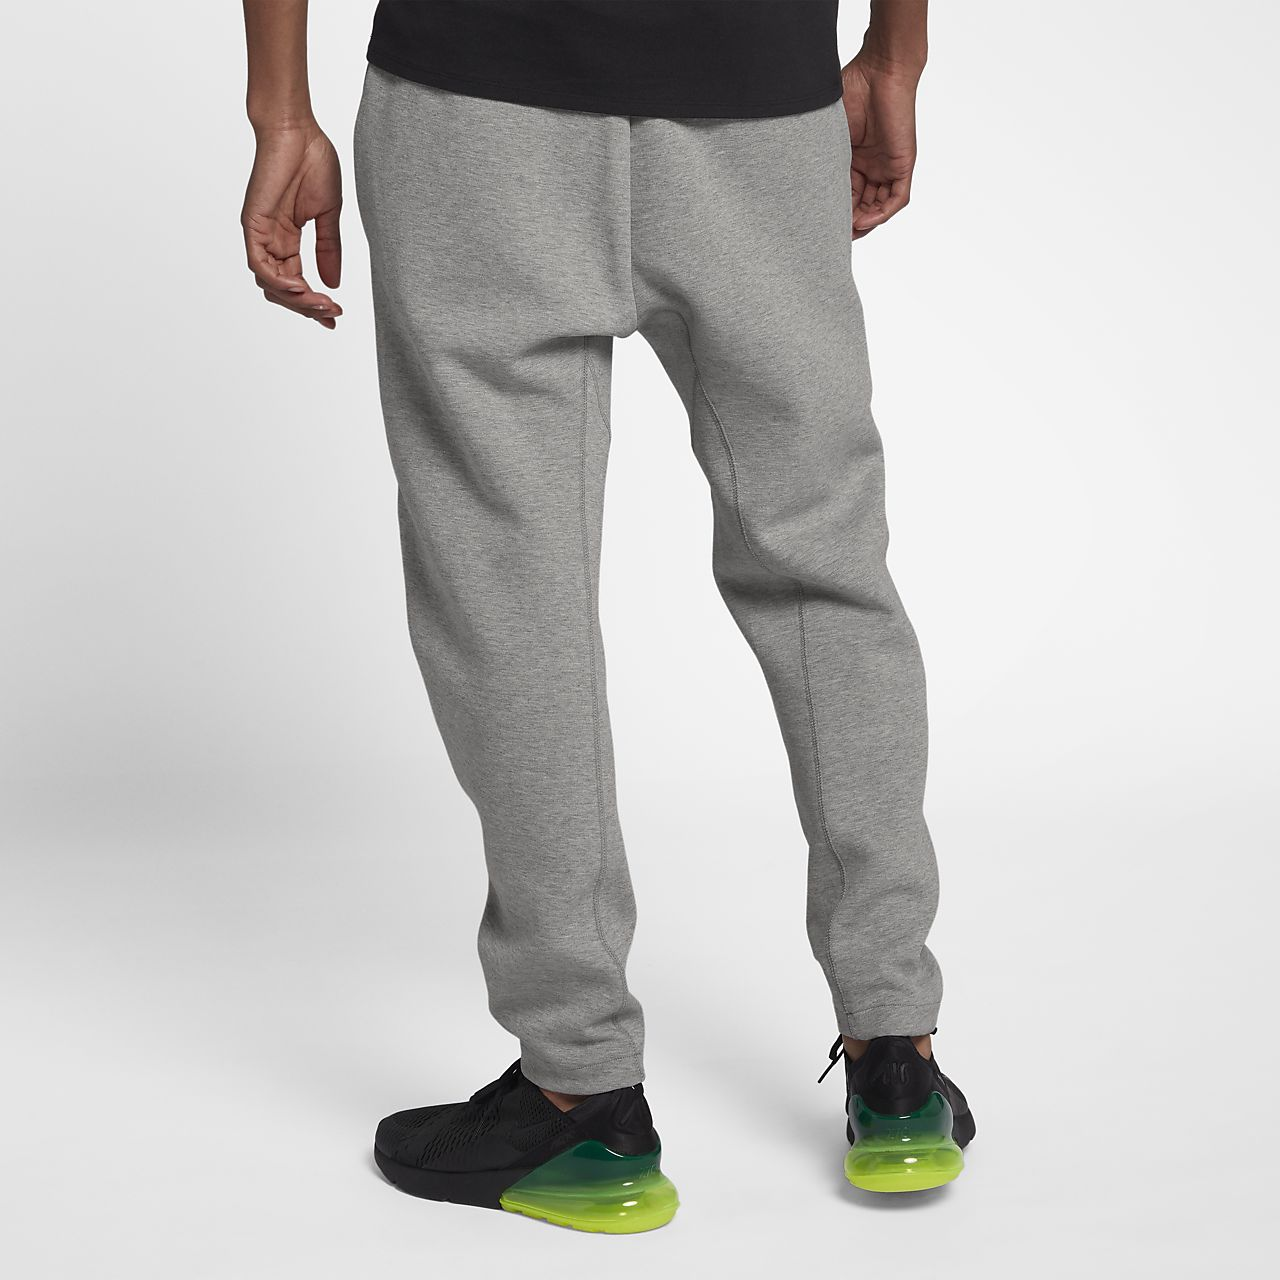 e43085cf544e Nike Sportswear Tech Fleece Men s Trousers. Nike.com SE